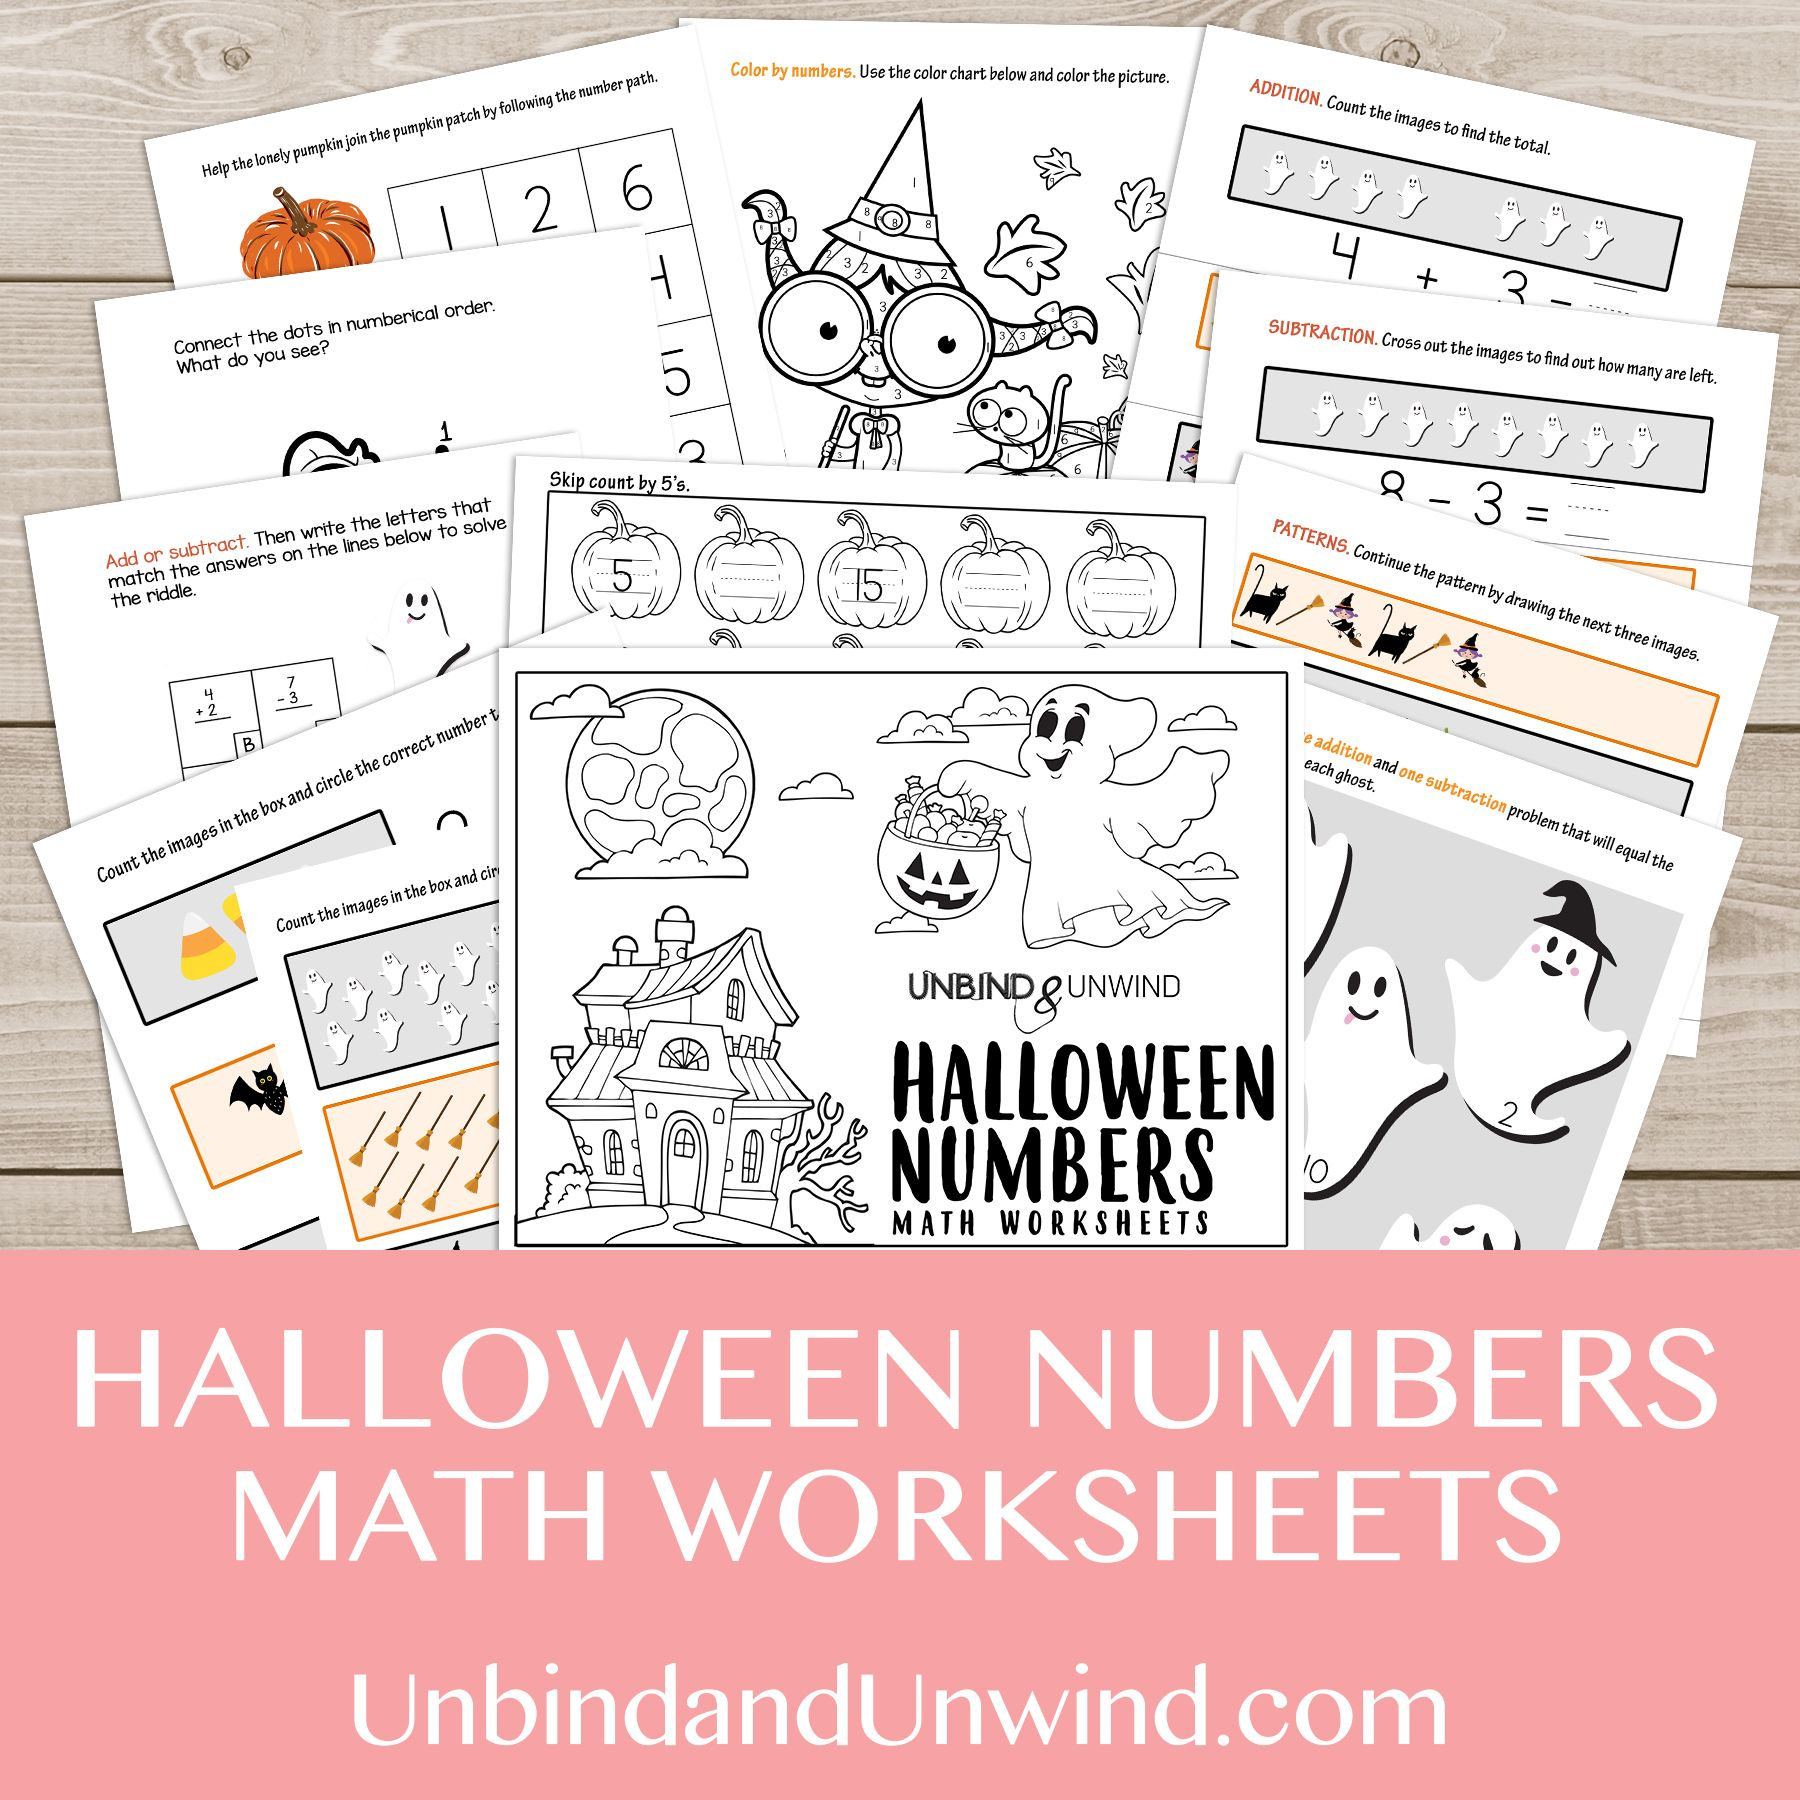 Halloween Numbers Math Worksheets